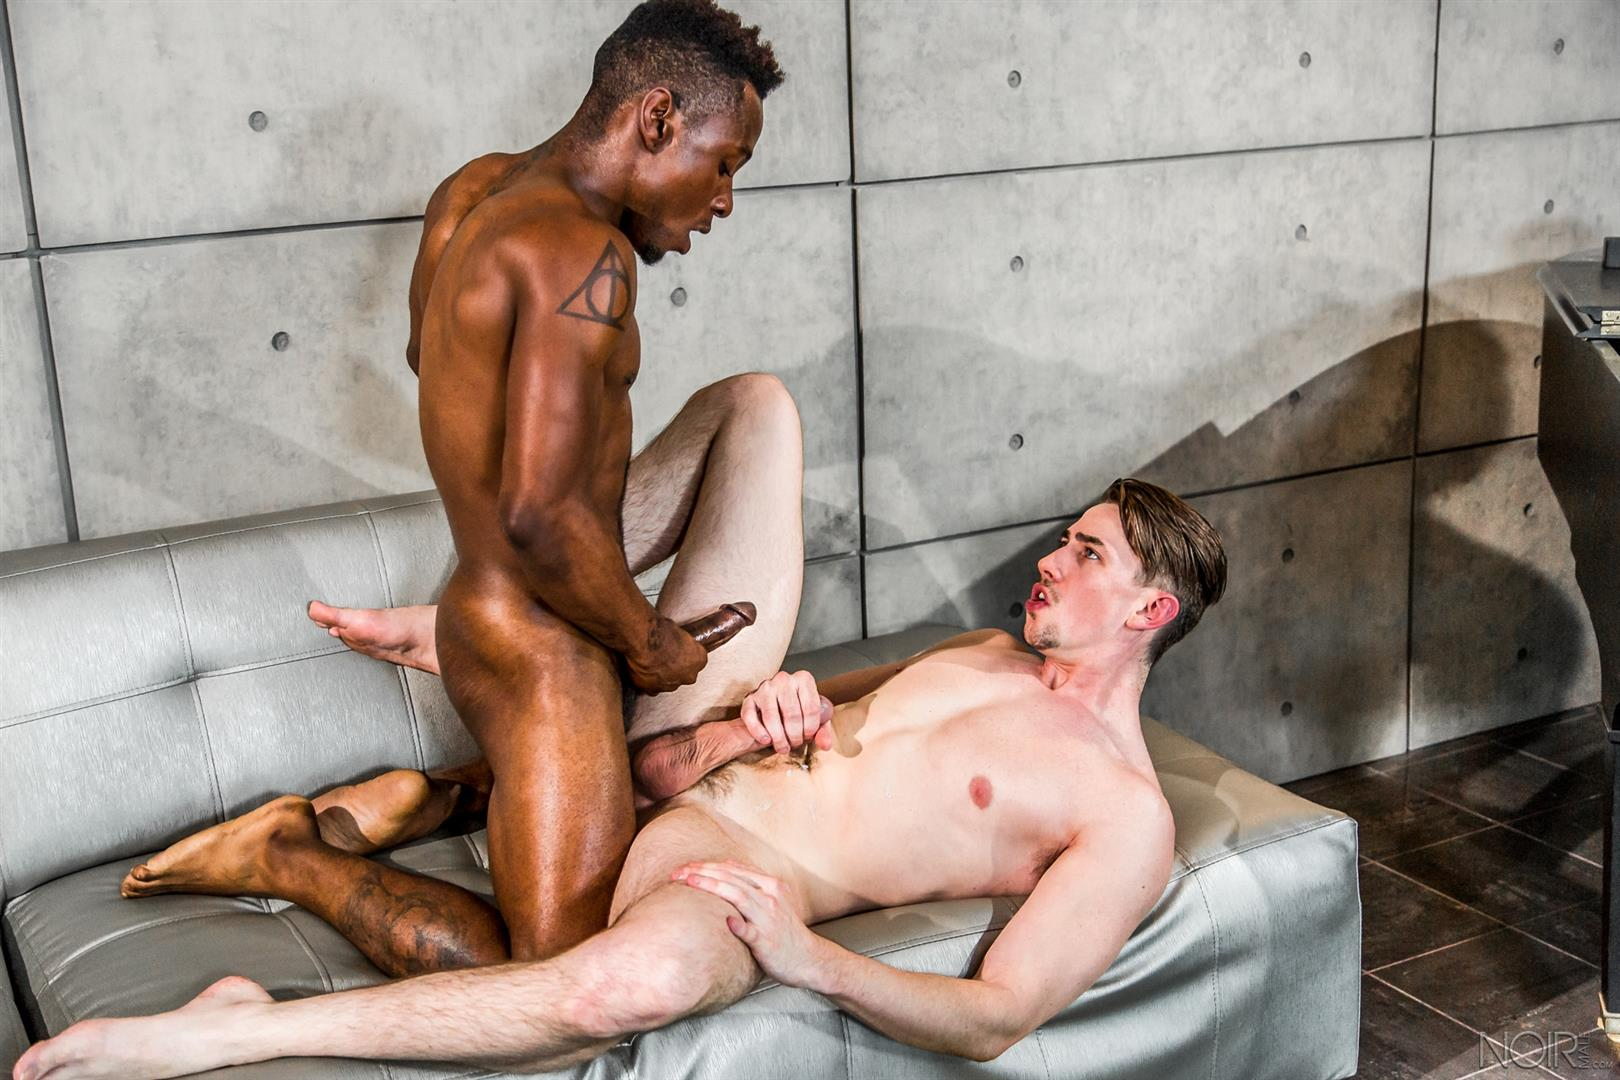 Noir-Male-Jack-Hunter-and-Miller-Axton-Big-Black-Dick-Interracial-Gay-Sex-Video-14 Jack Hunter Gets A Mouthful Of Cum From A Big Black Cock